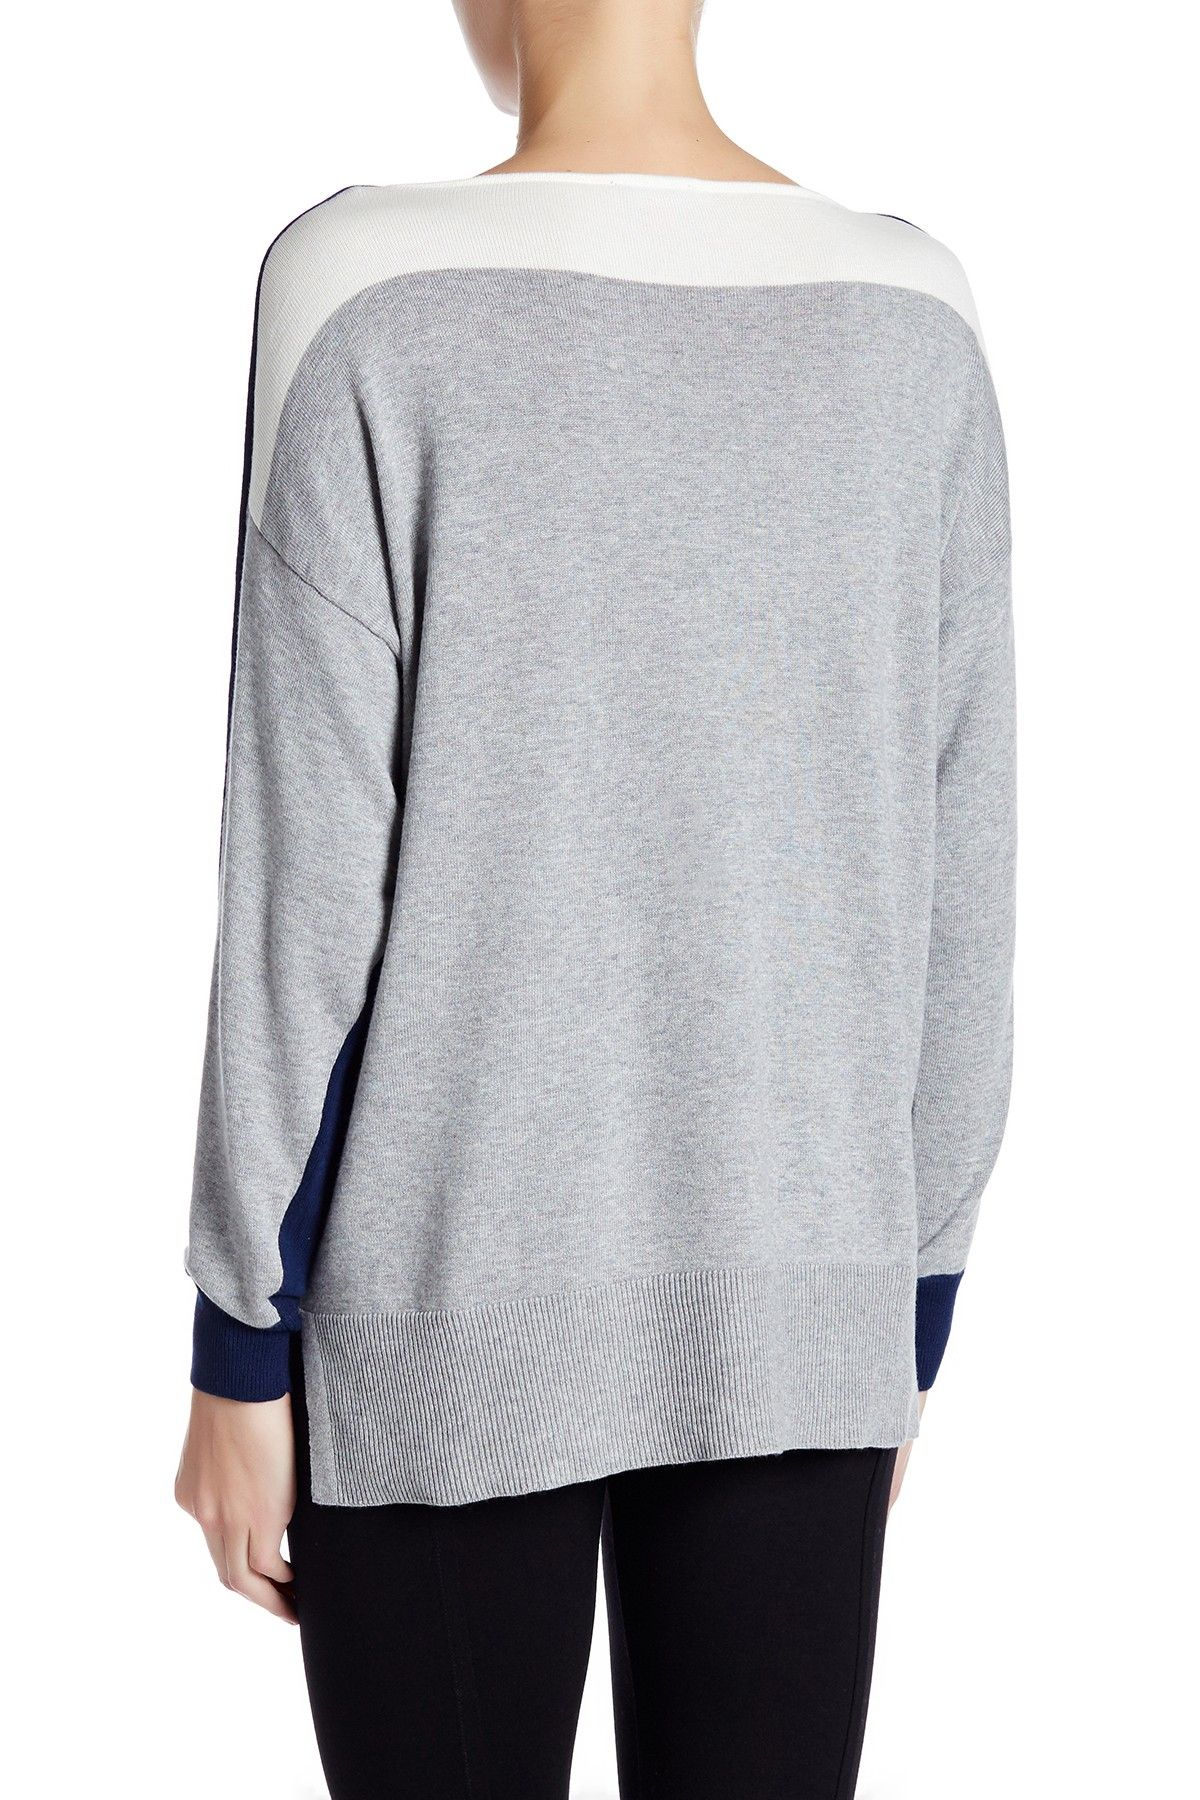 66f1d3f475 Colorblock Boatneck Sweater by Vince Camuto on  nordstrom rack